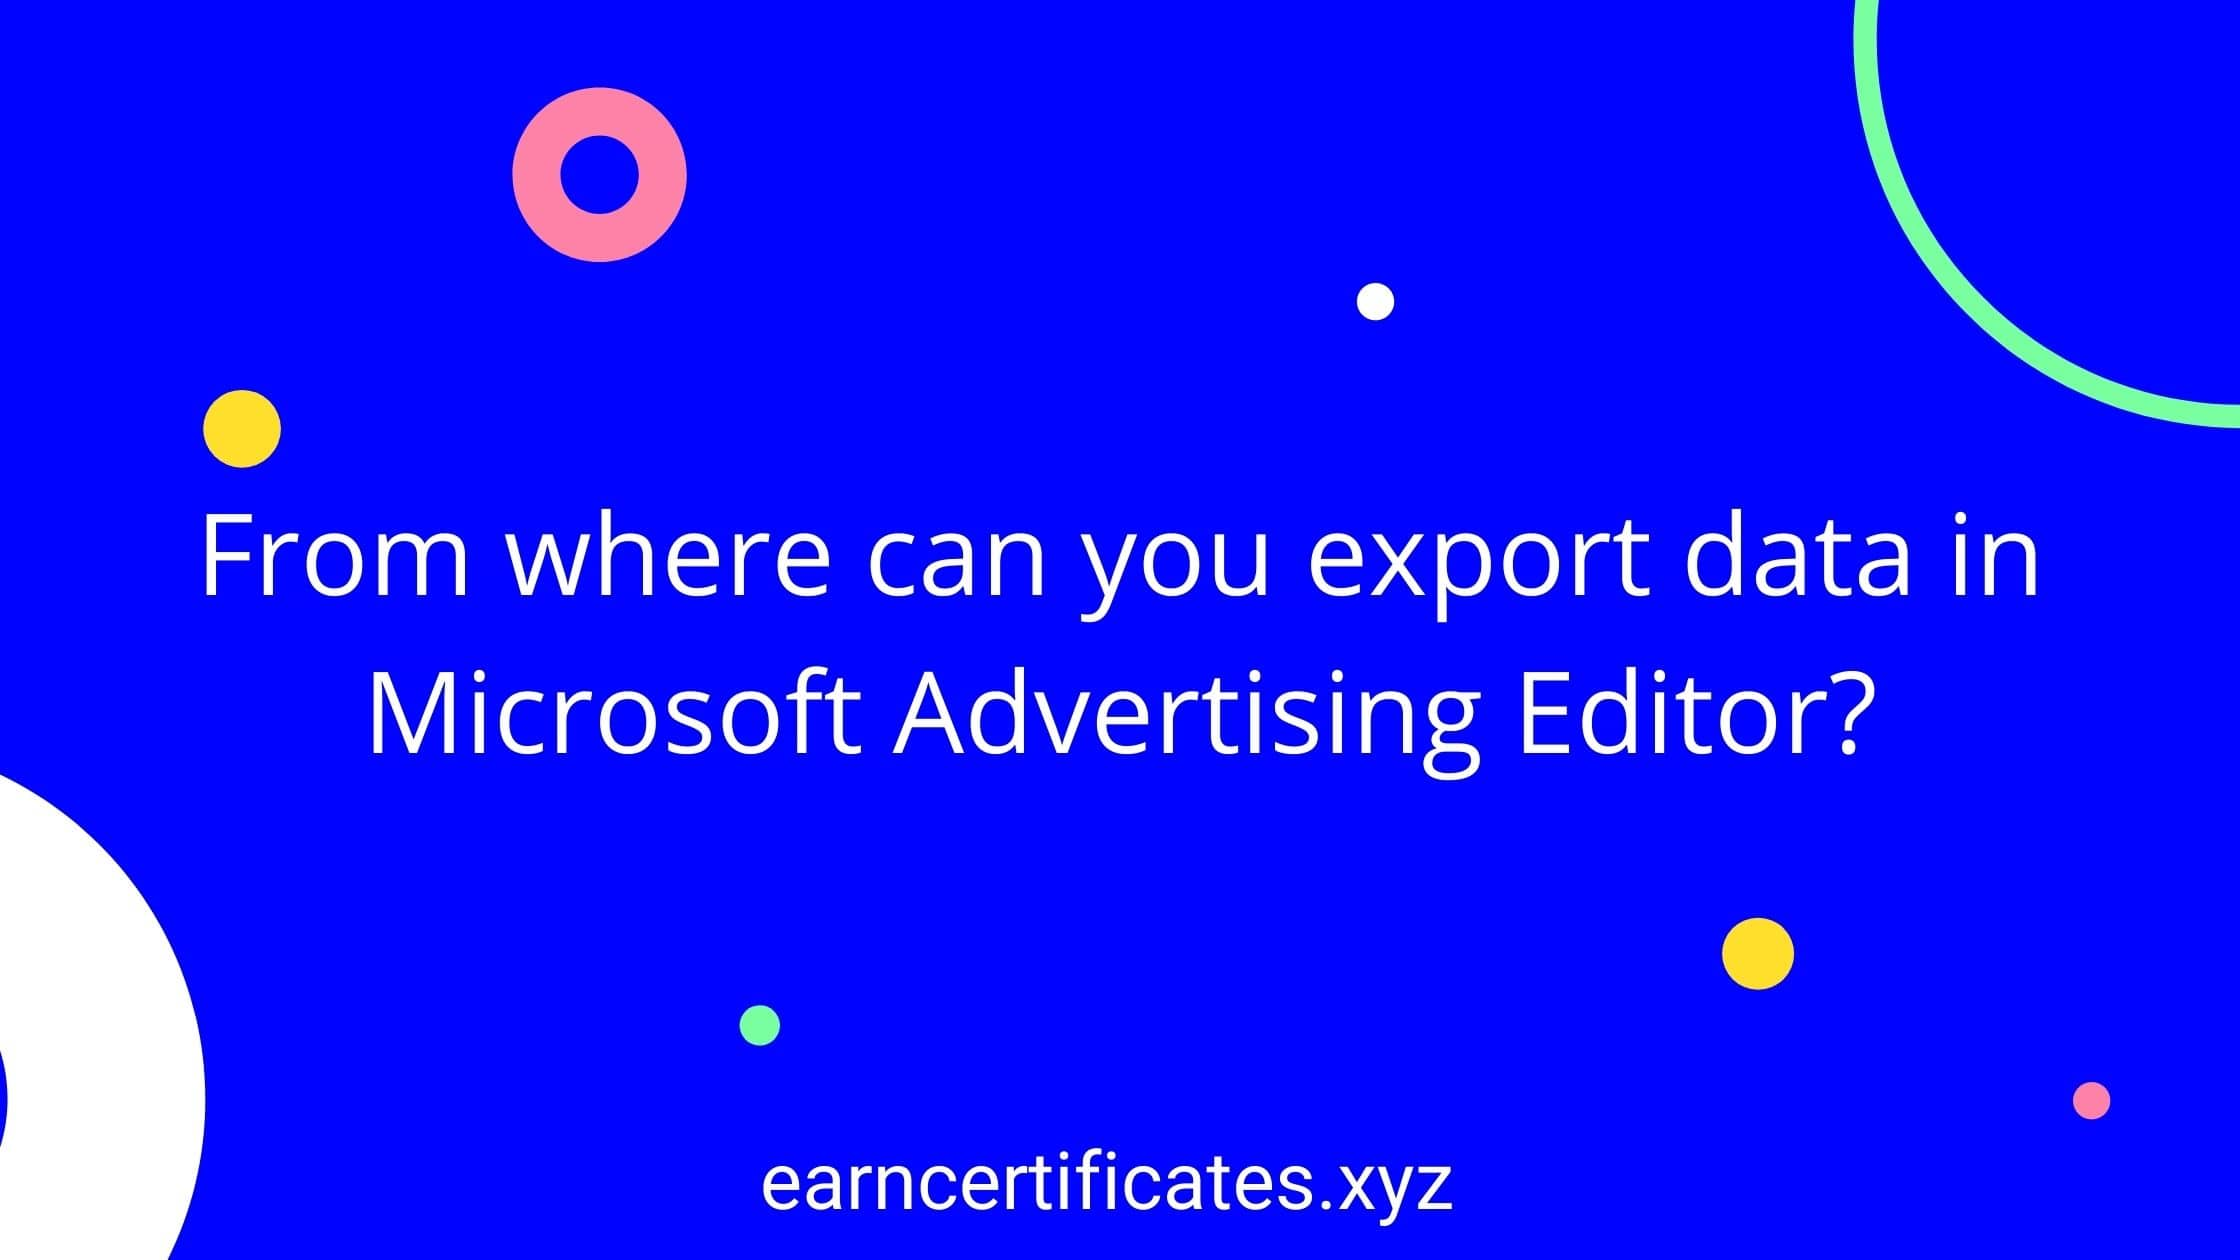 From where can you export data in Microsoft Advertising Editor?